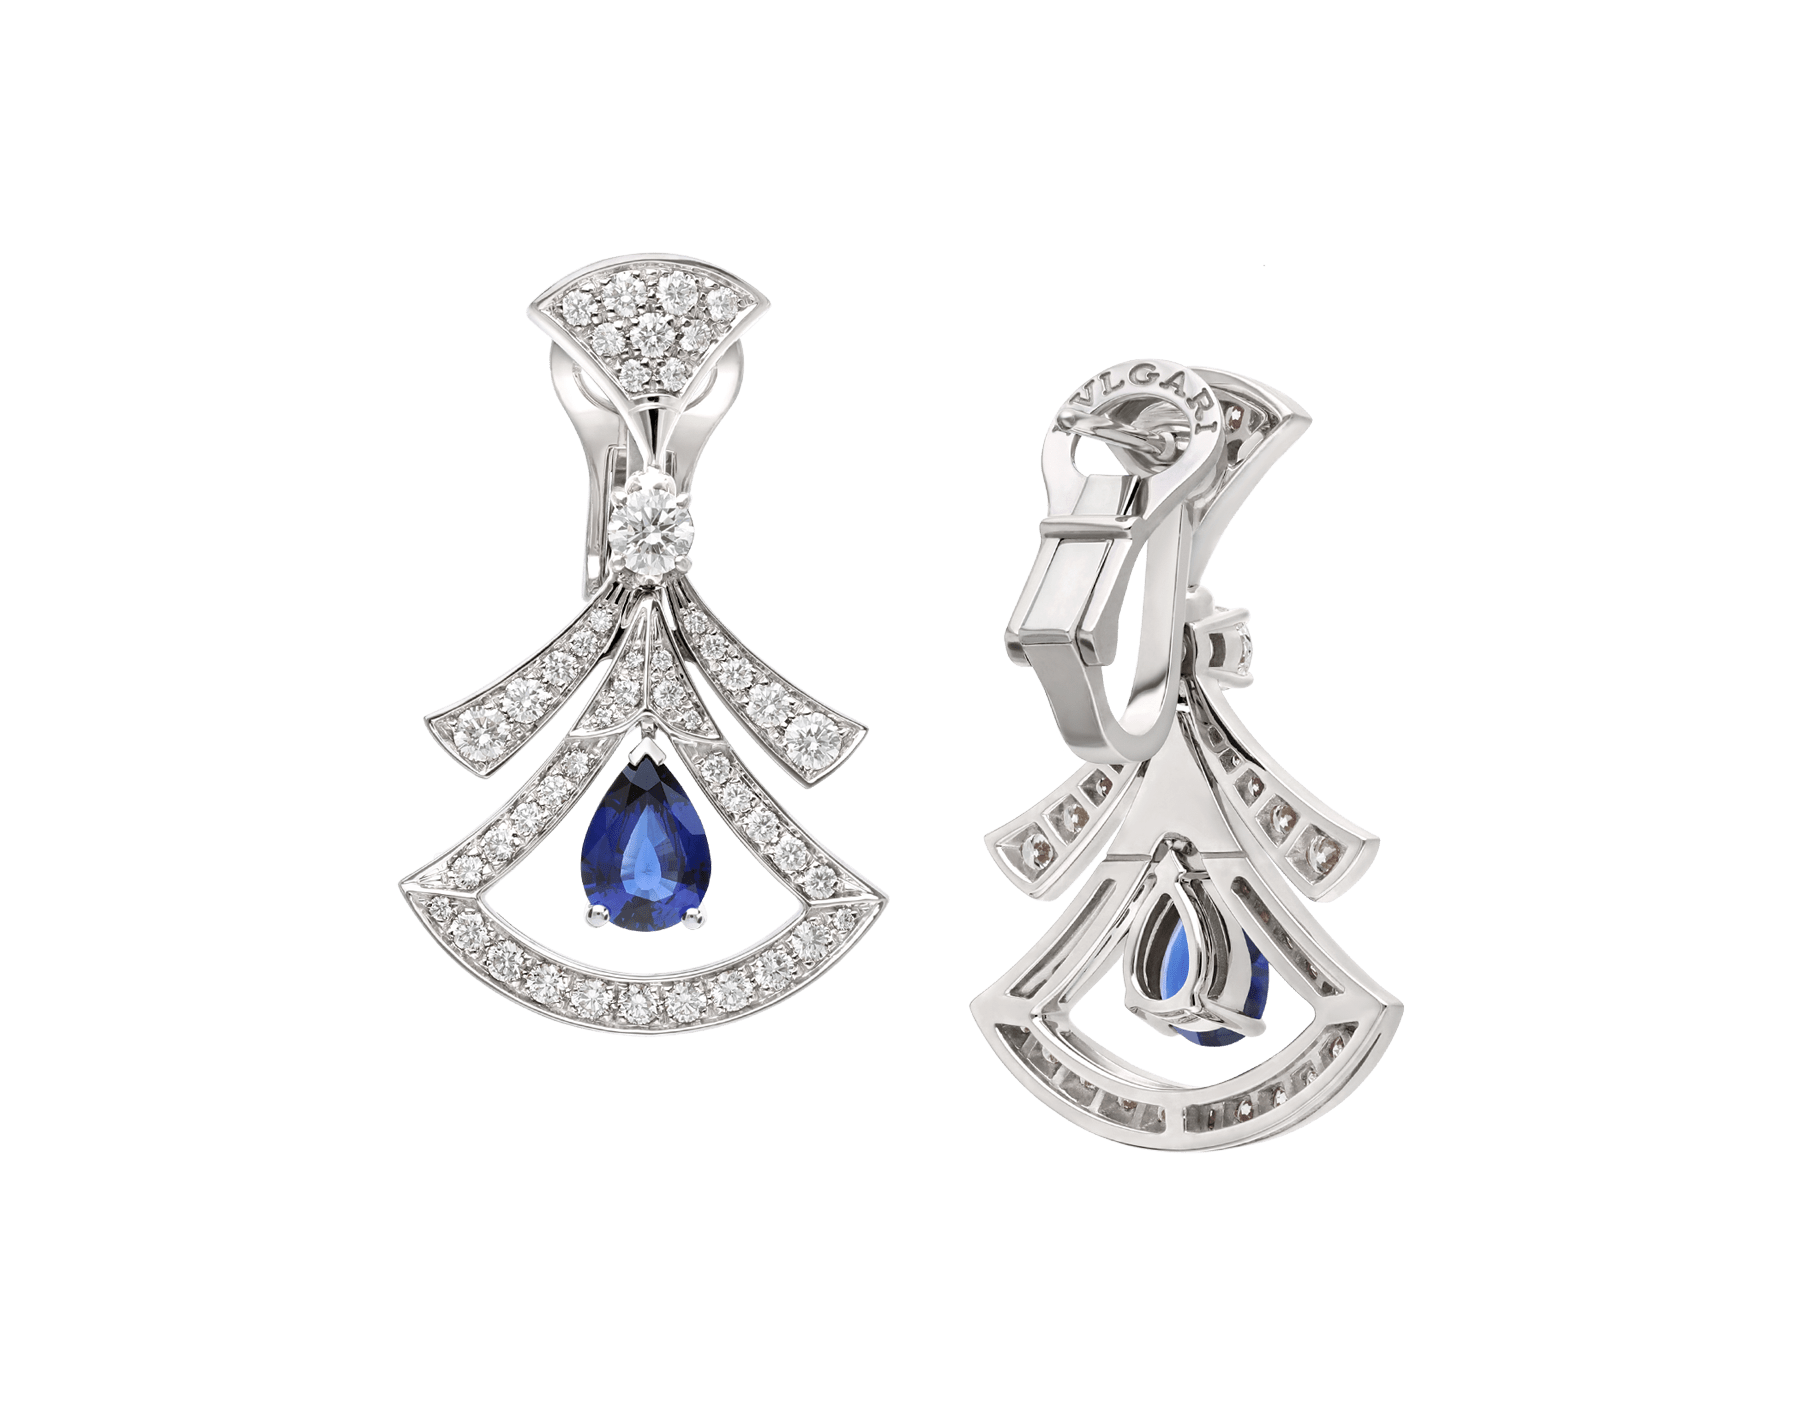 DIVAS' DREAM 18 kt white gold openwork earrings, set with pear-shaped sapphires, round brilliant-cut and pavé diamonds. 357324 image 3